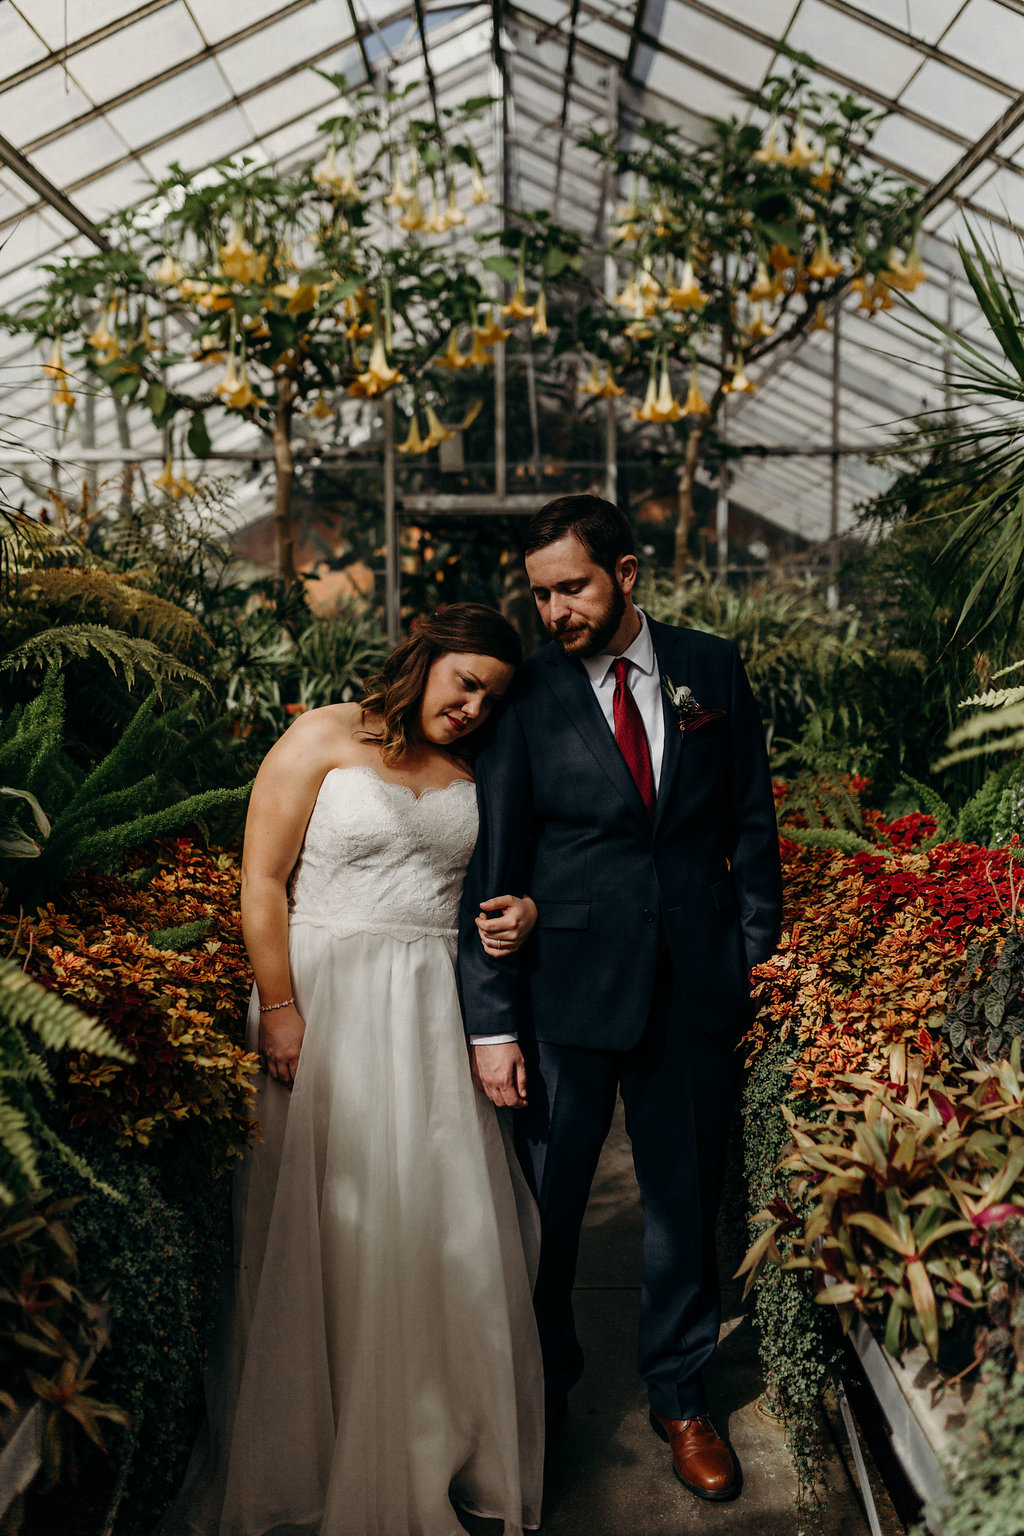 Intimate+Ohio+Wedding+and+Portrait+Photography+Agape+Photography.jpg